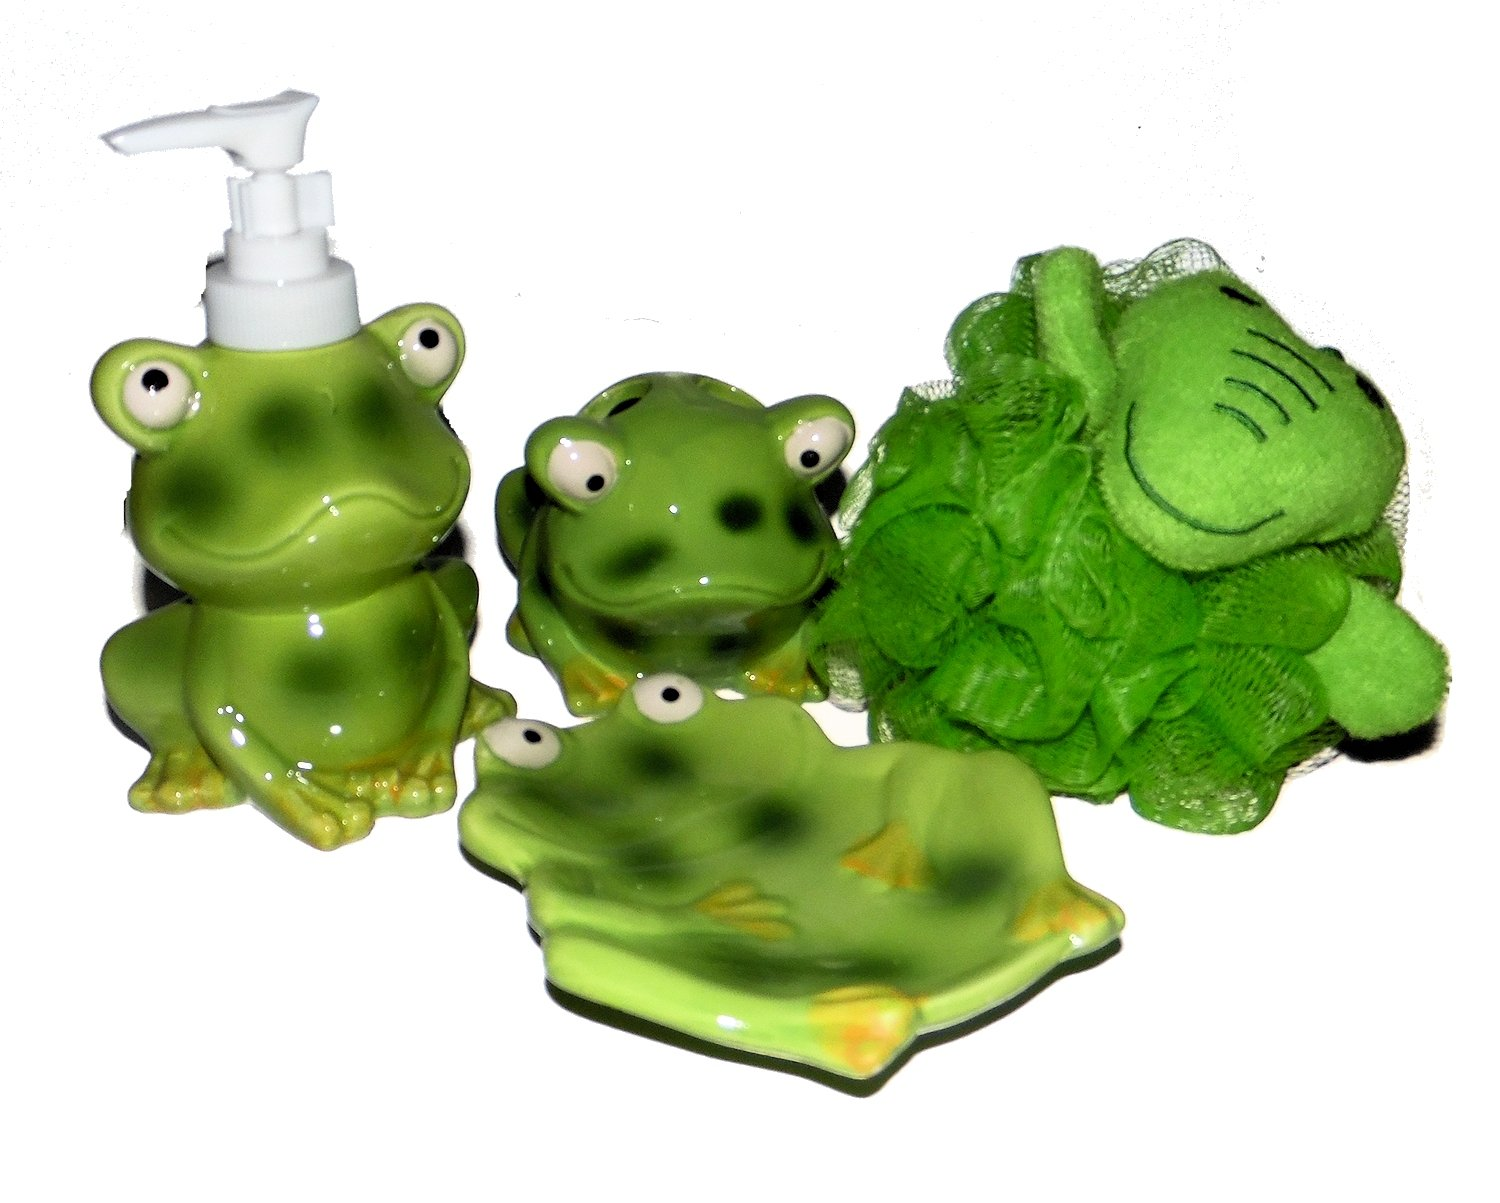 Frog Bathroom Accessories - Lotion Soap Dispenser, Soap Dish, Toothbrush Holder and Bath Sponge